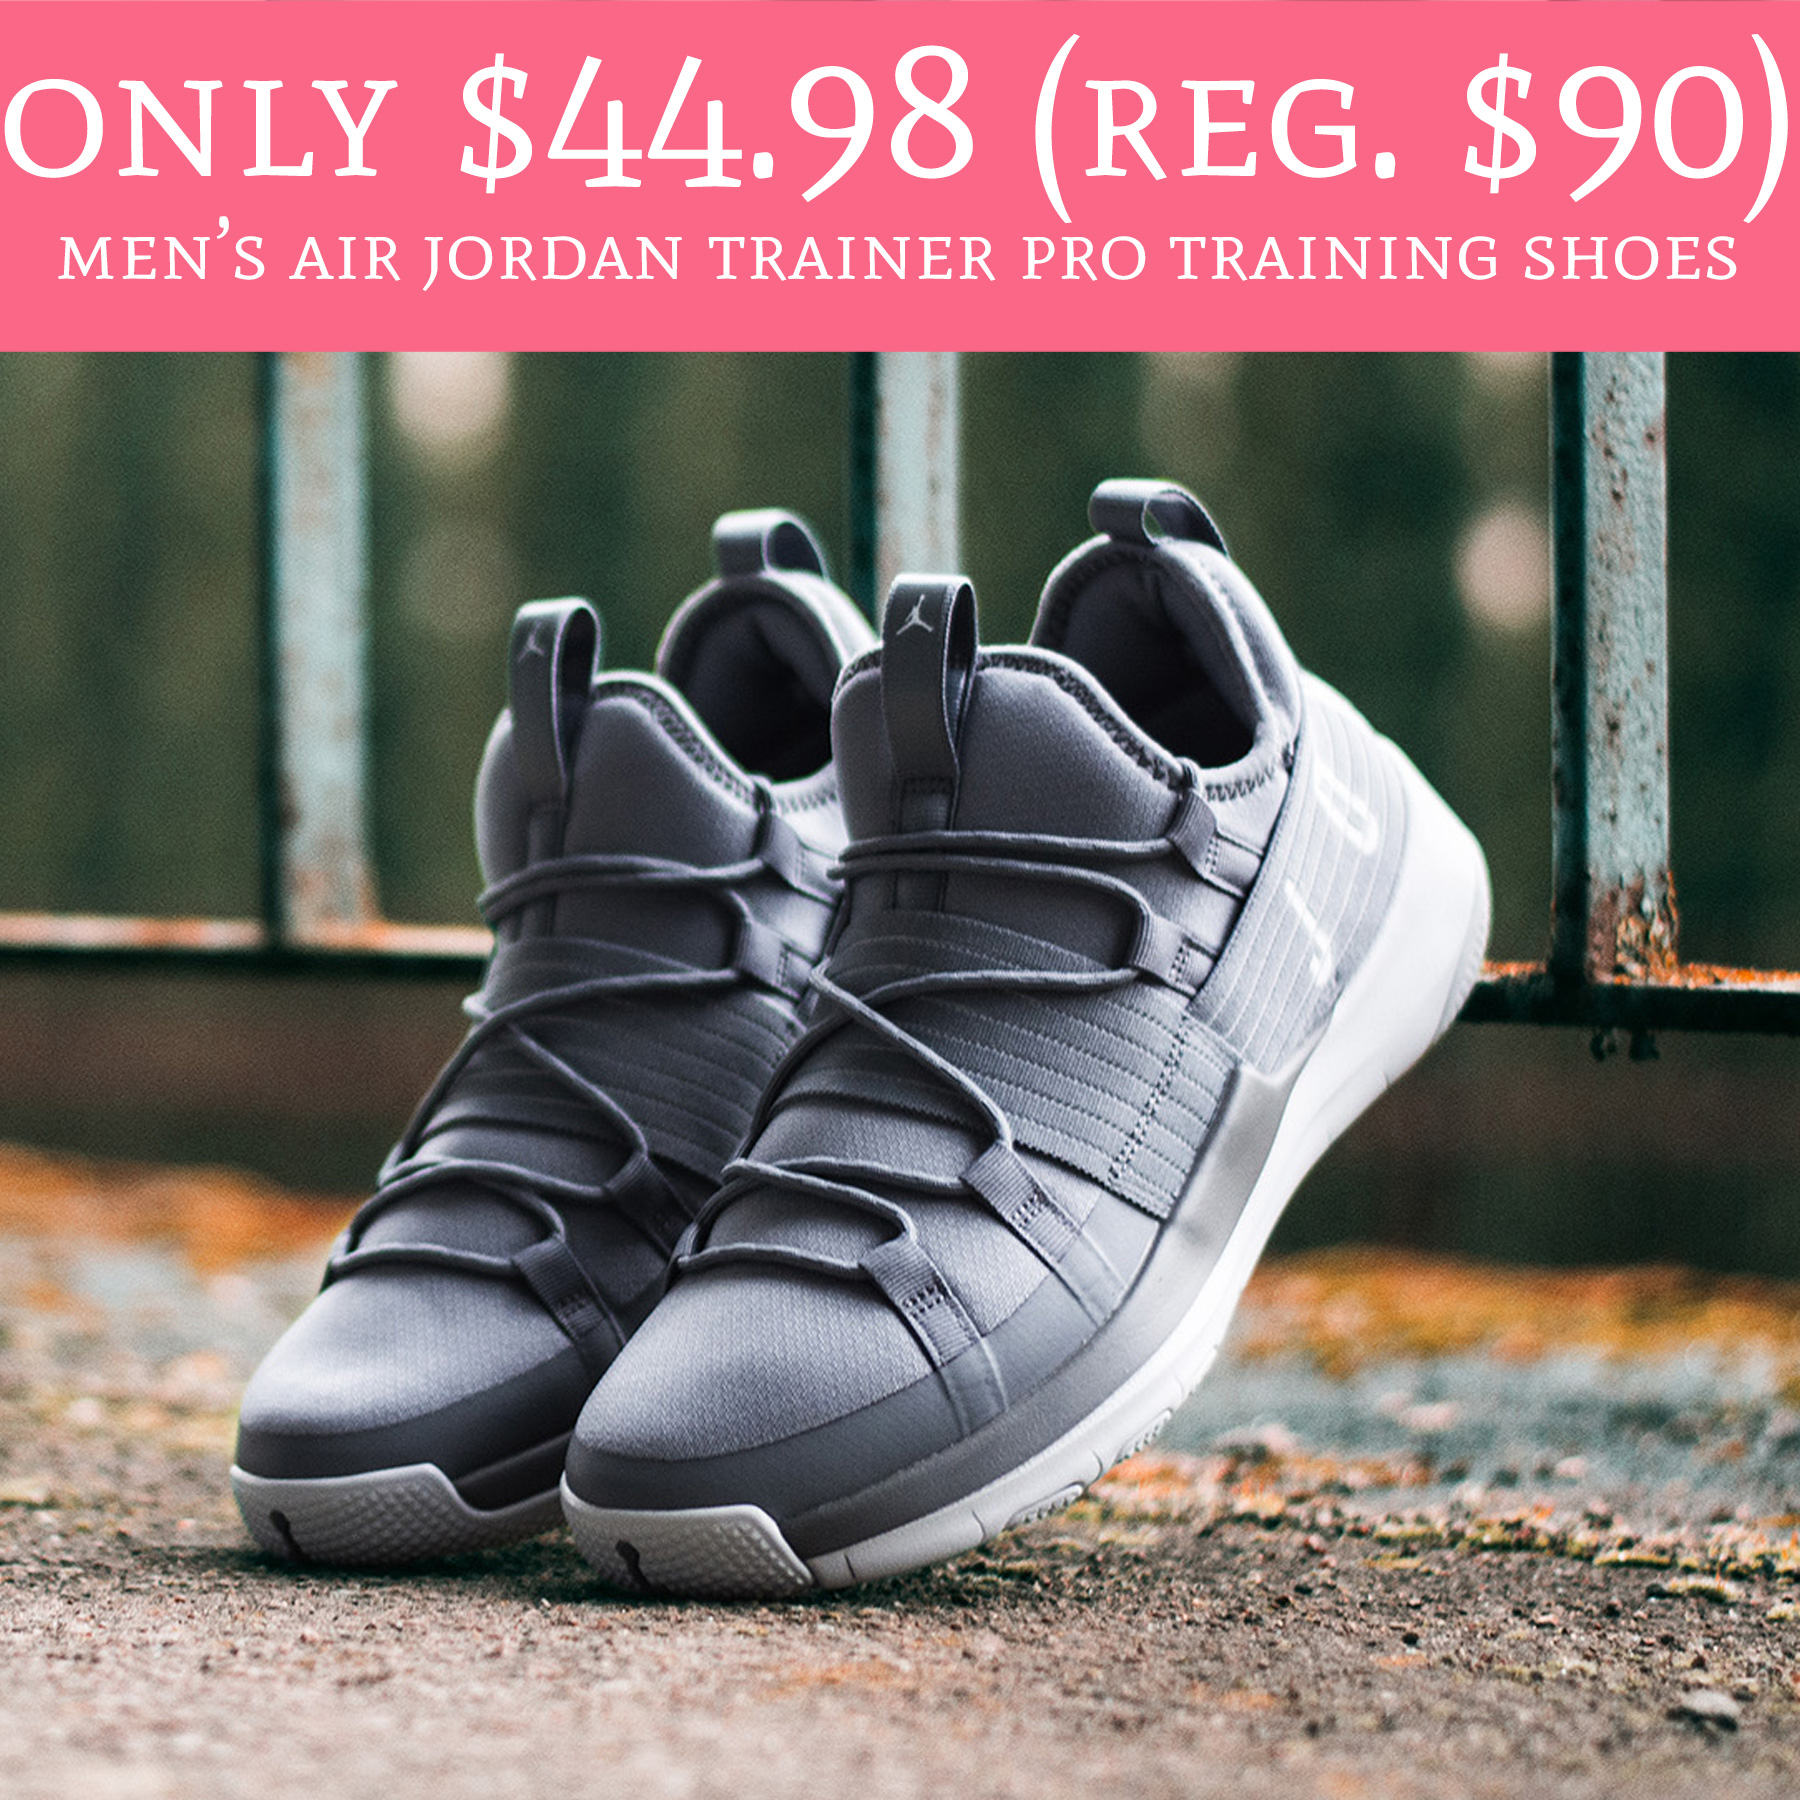 9b14f9c6f3e8 These will sell out quick! Head over to FinishLine.com where you can snag  Men s Air Jordan Trainer Pro Training Shoes ...